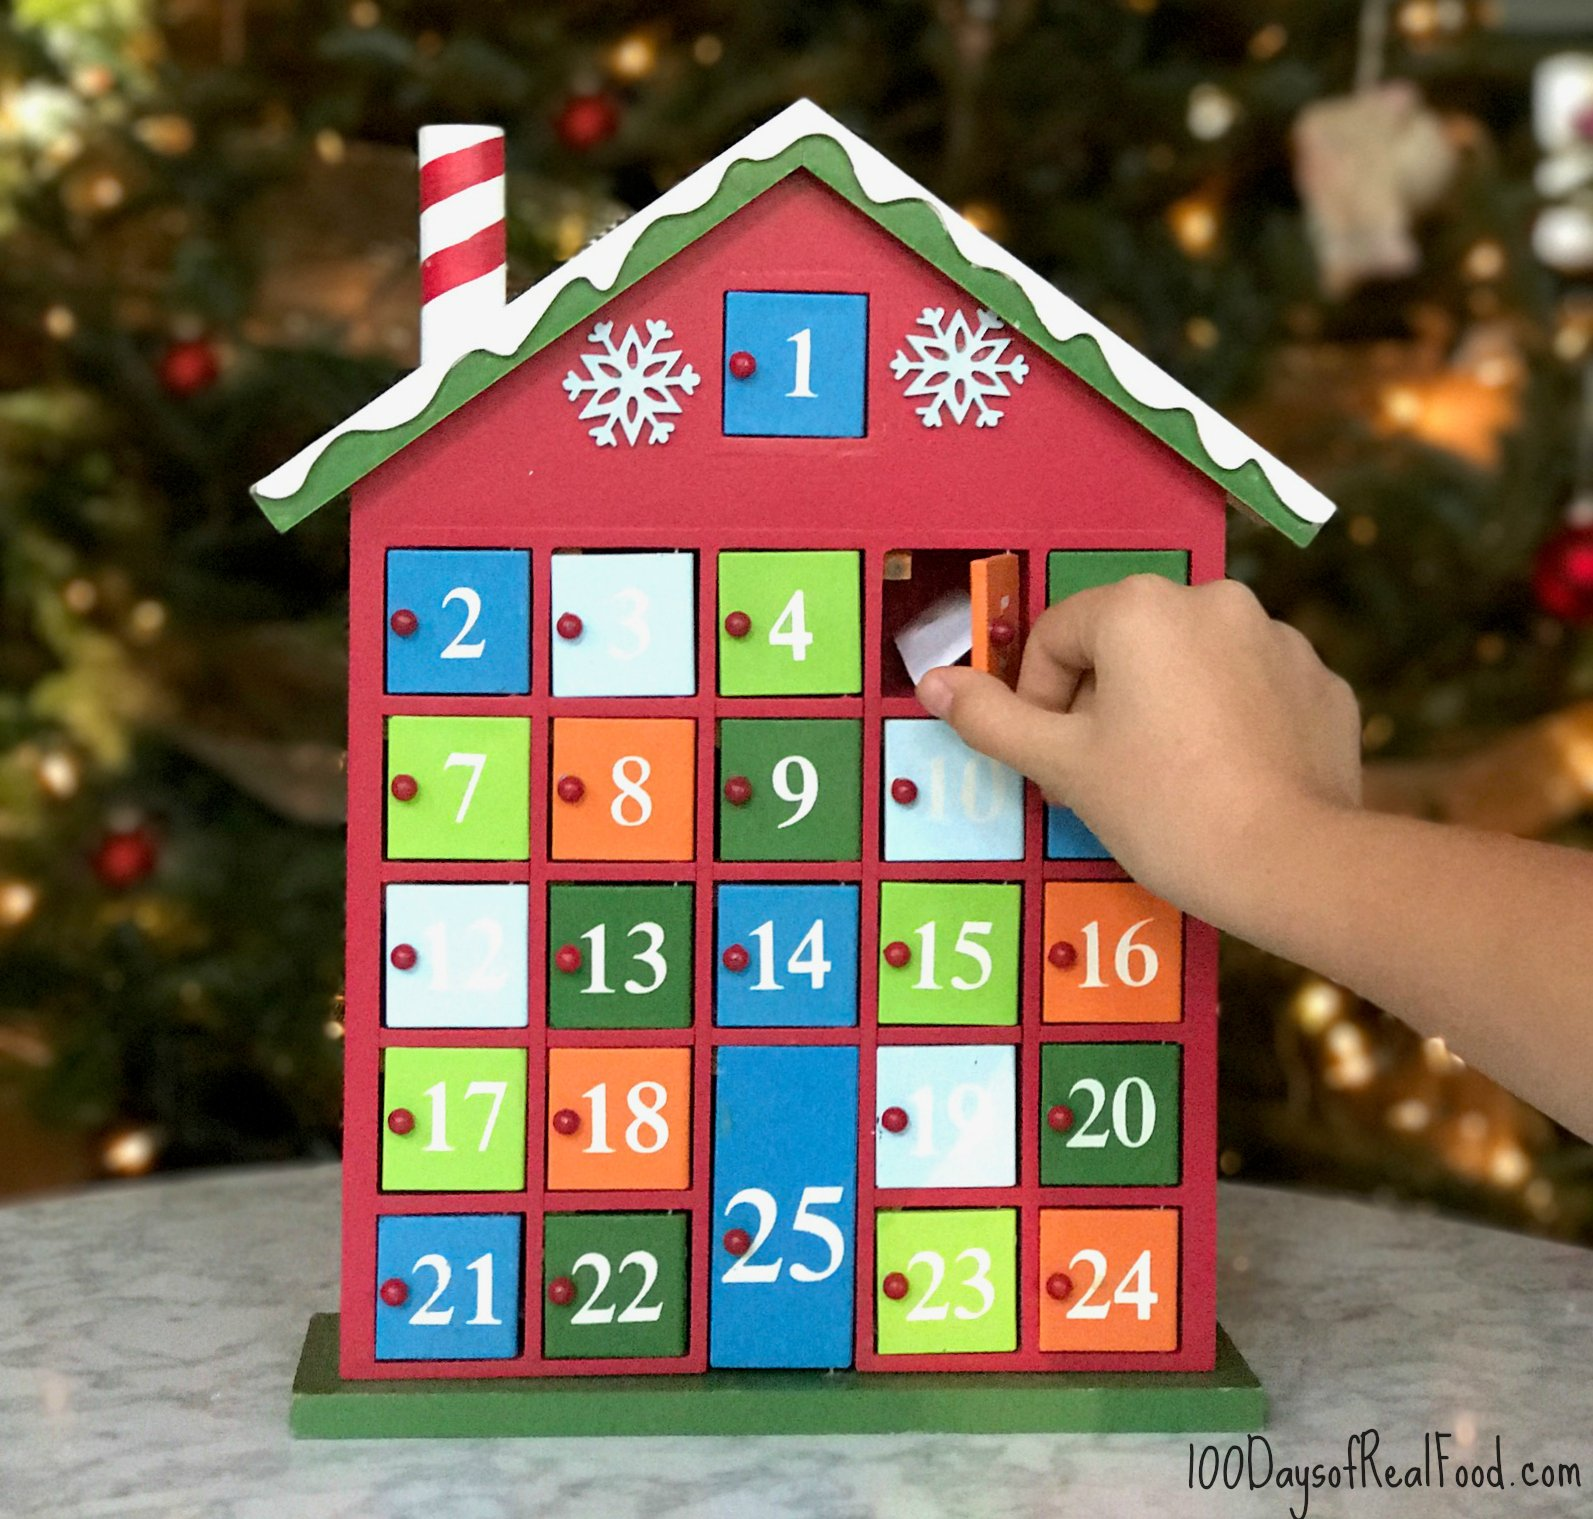 Ideas For Advent Calendar Netmums : Advent calendar ideas w o candy updated